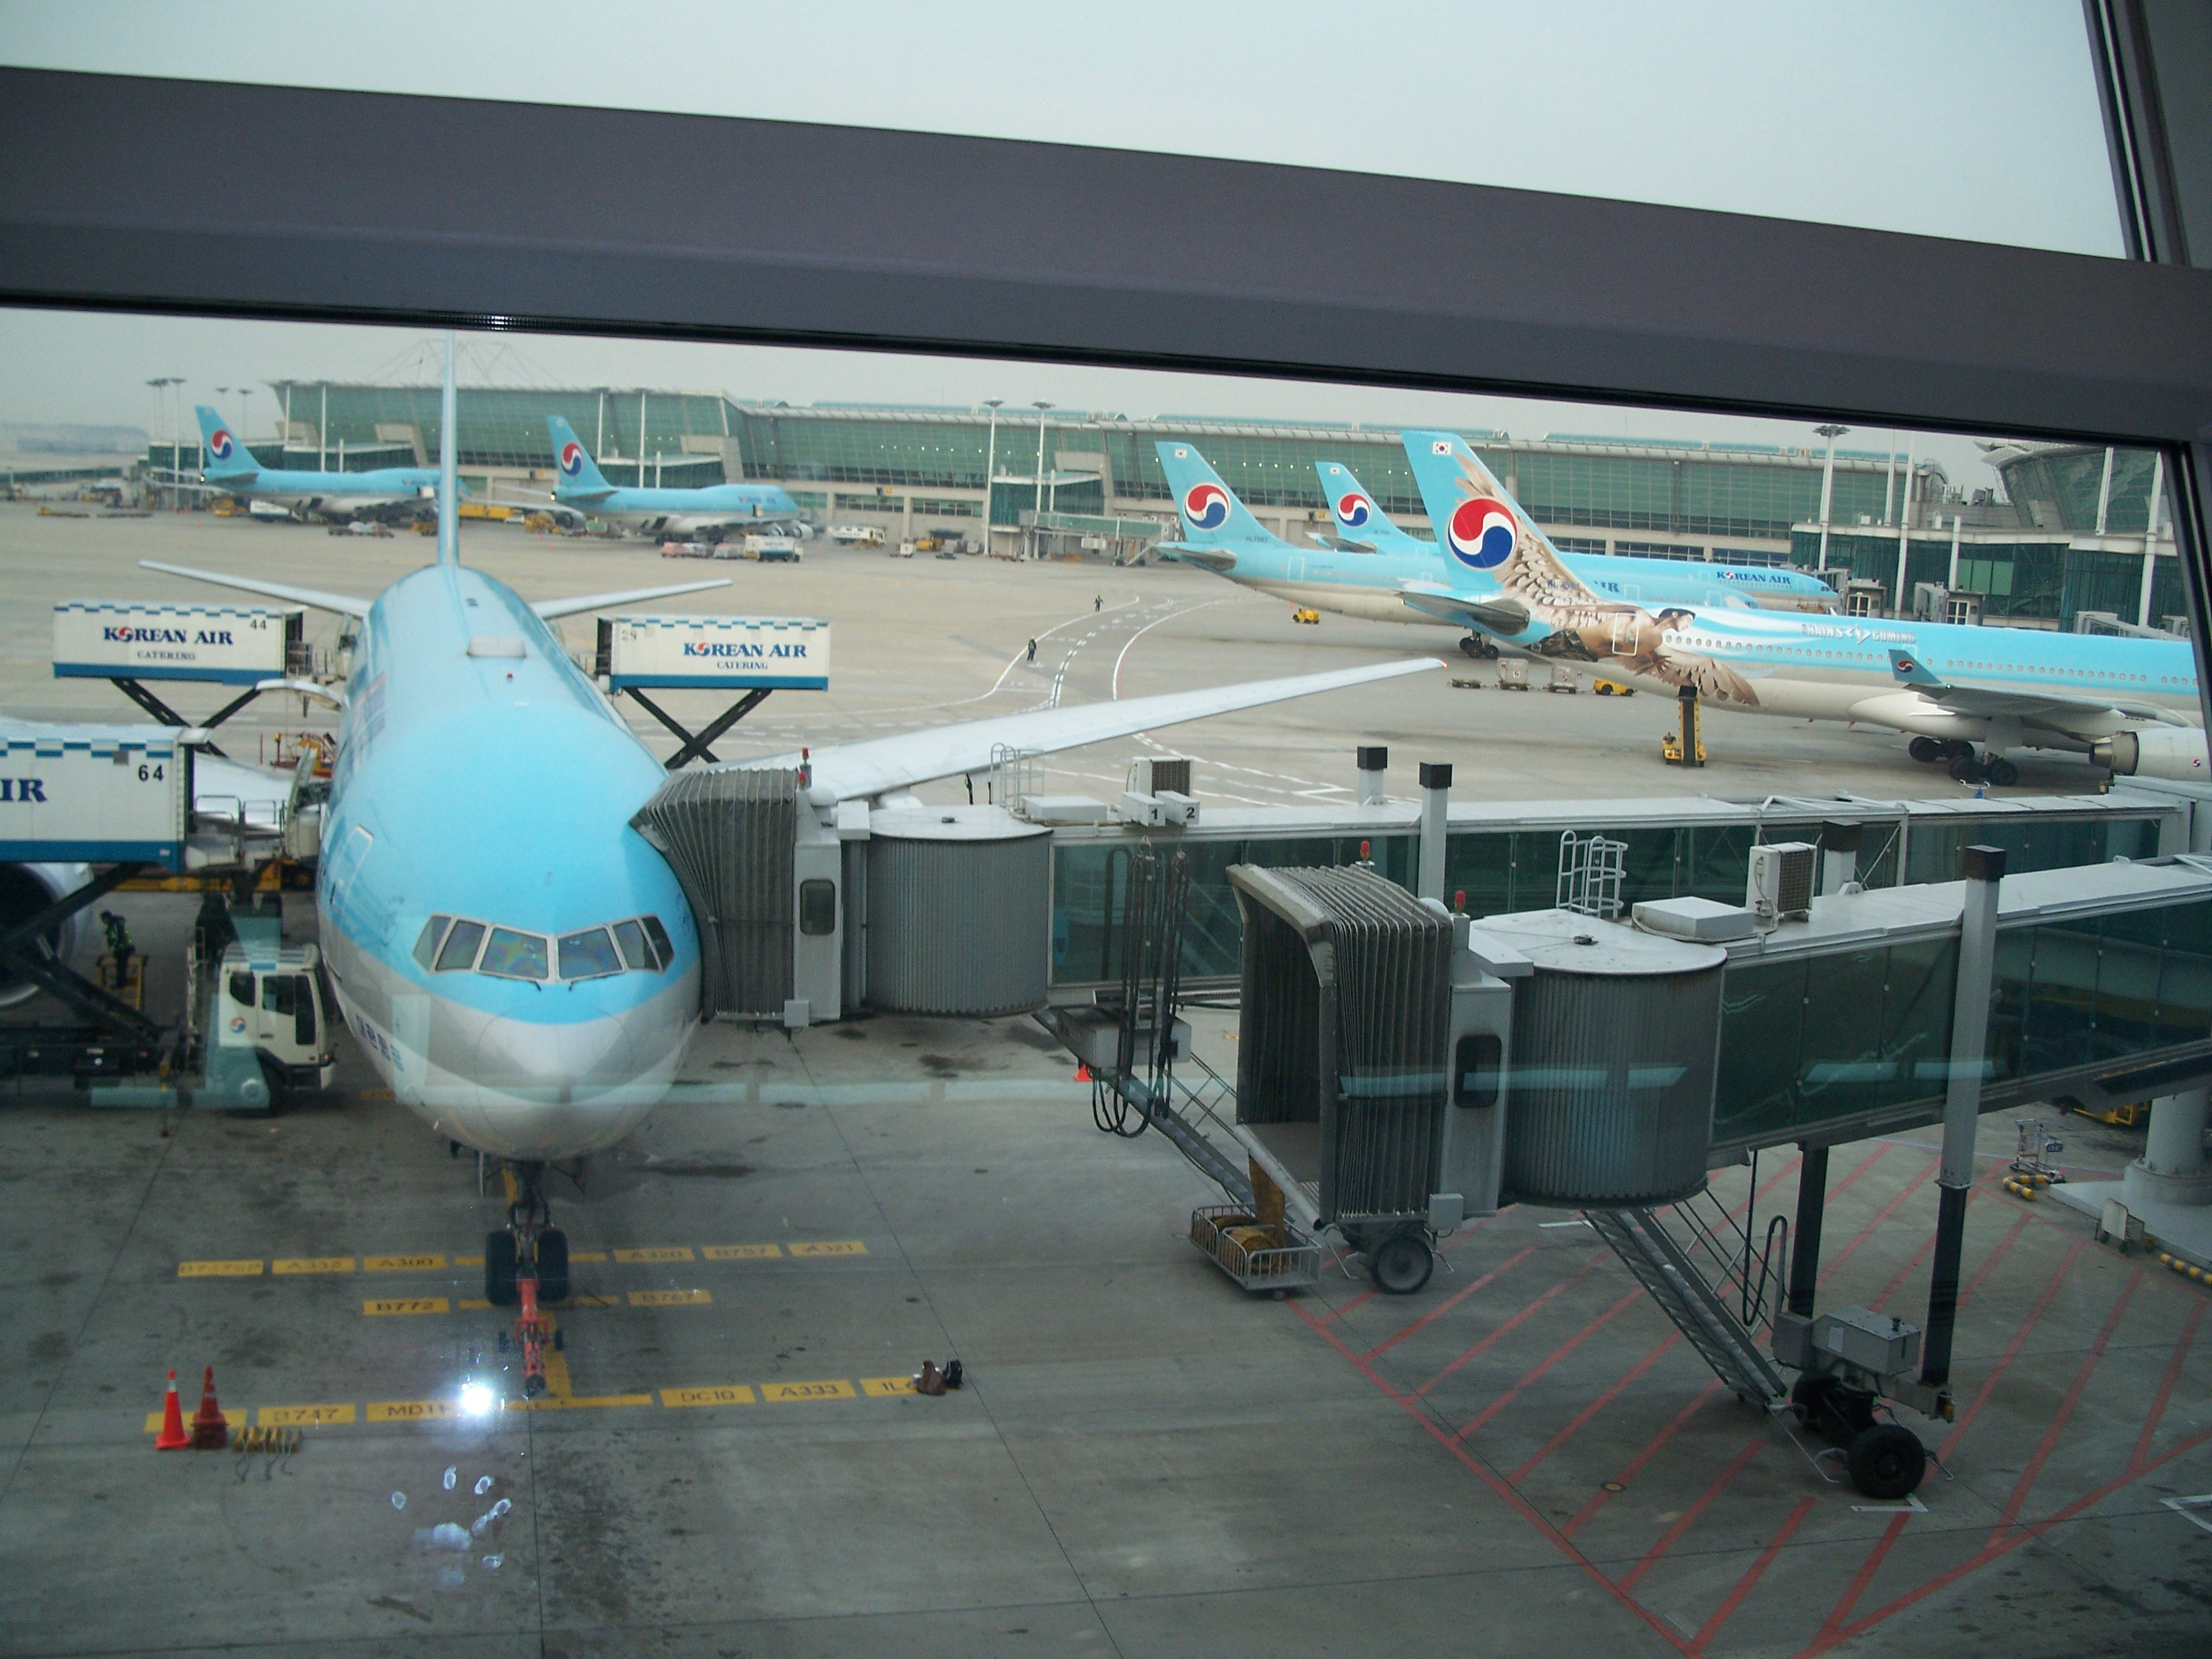 south korea airport 2 - photo #22